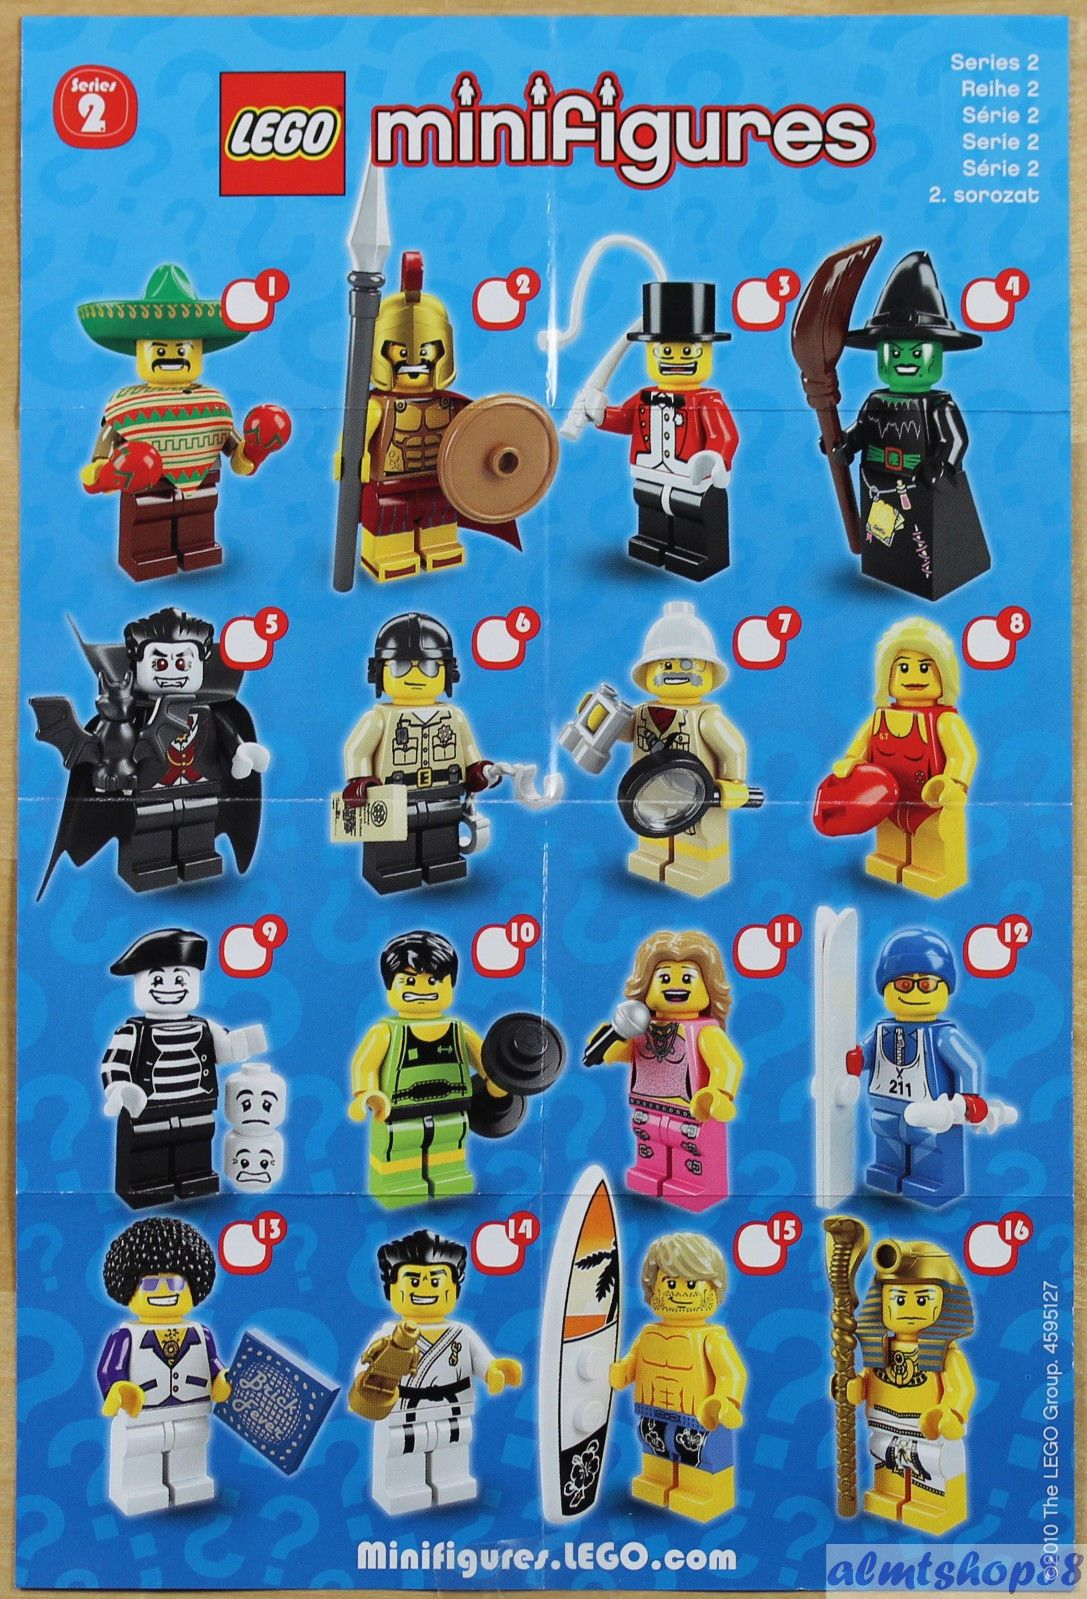 lego mini poster leaflet minifigures series 1 2 3 4 5 6 7 8 9 10 11 12 13 14 15 lego legos. Black Bedroom Furniture Sets. Home Design Ideas